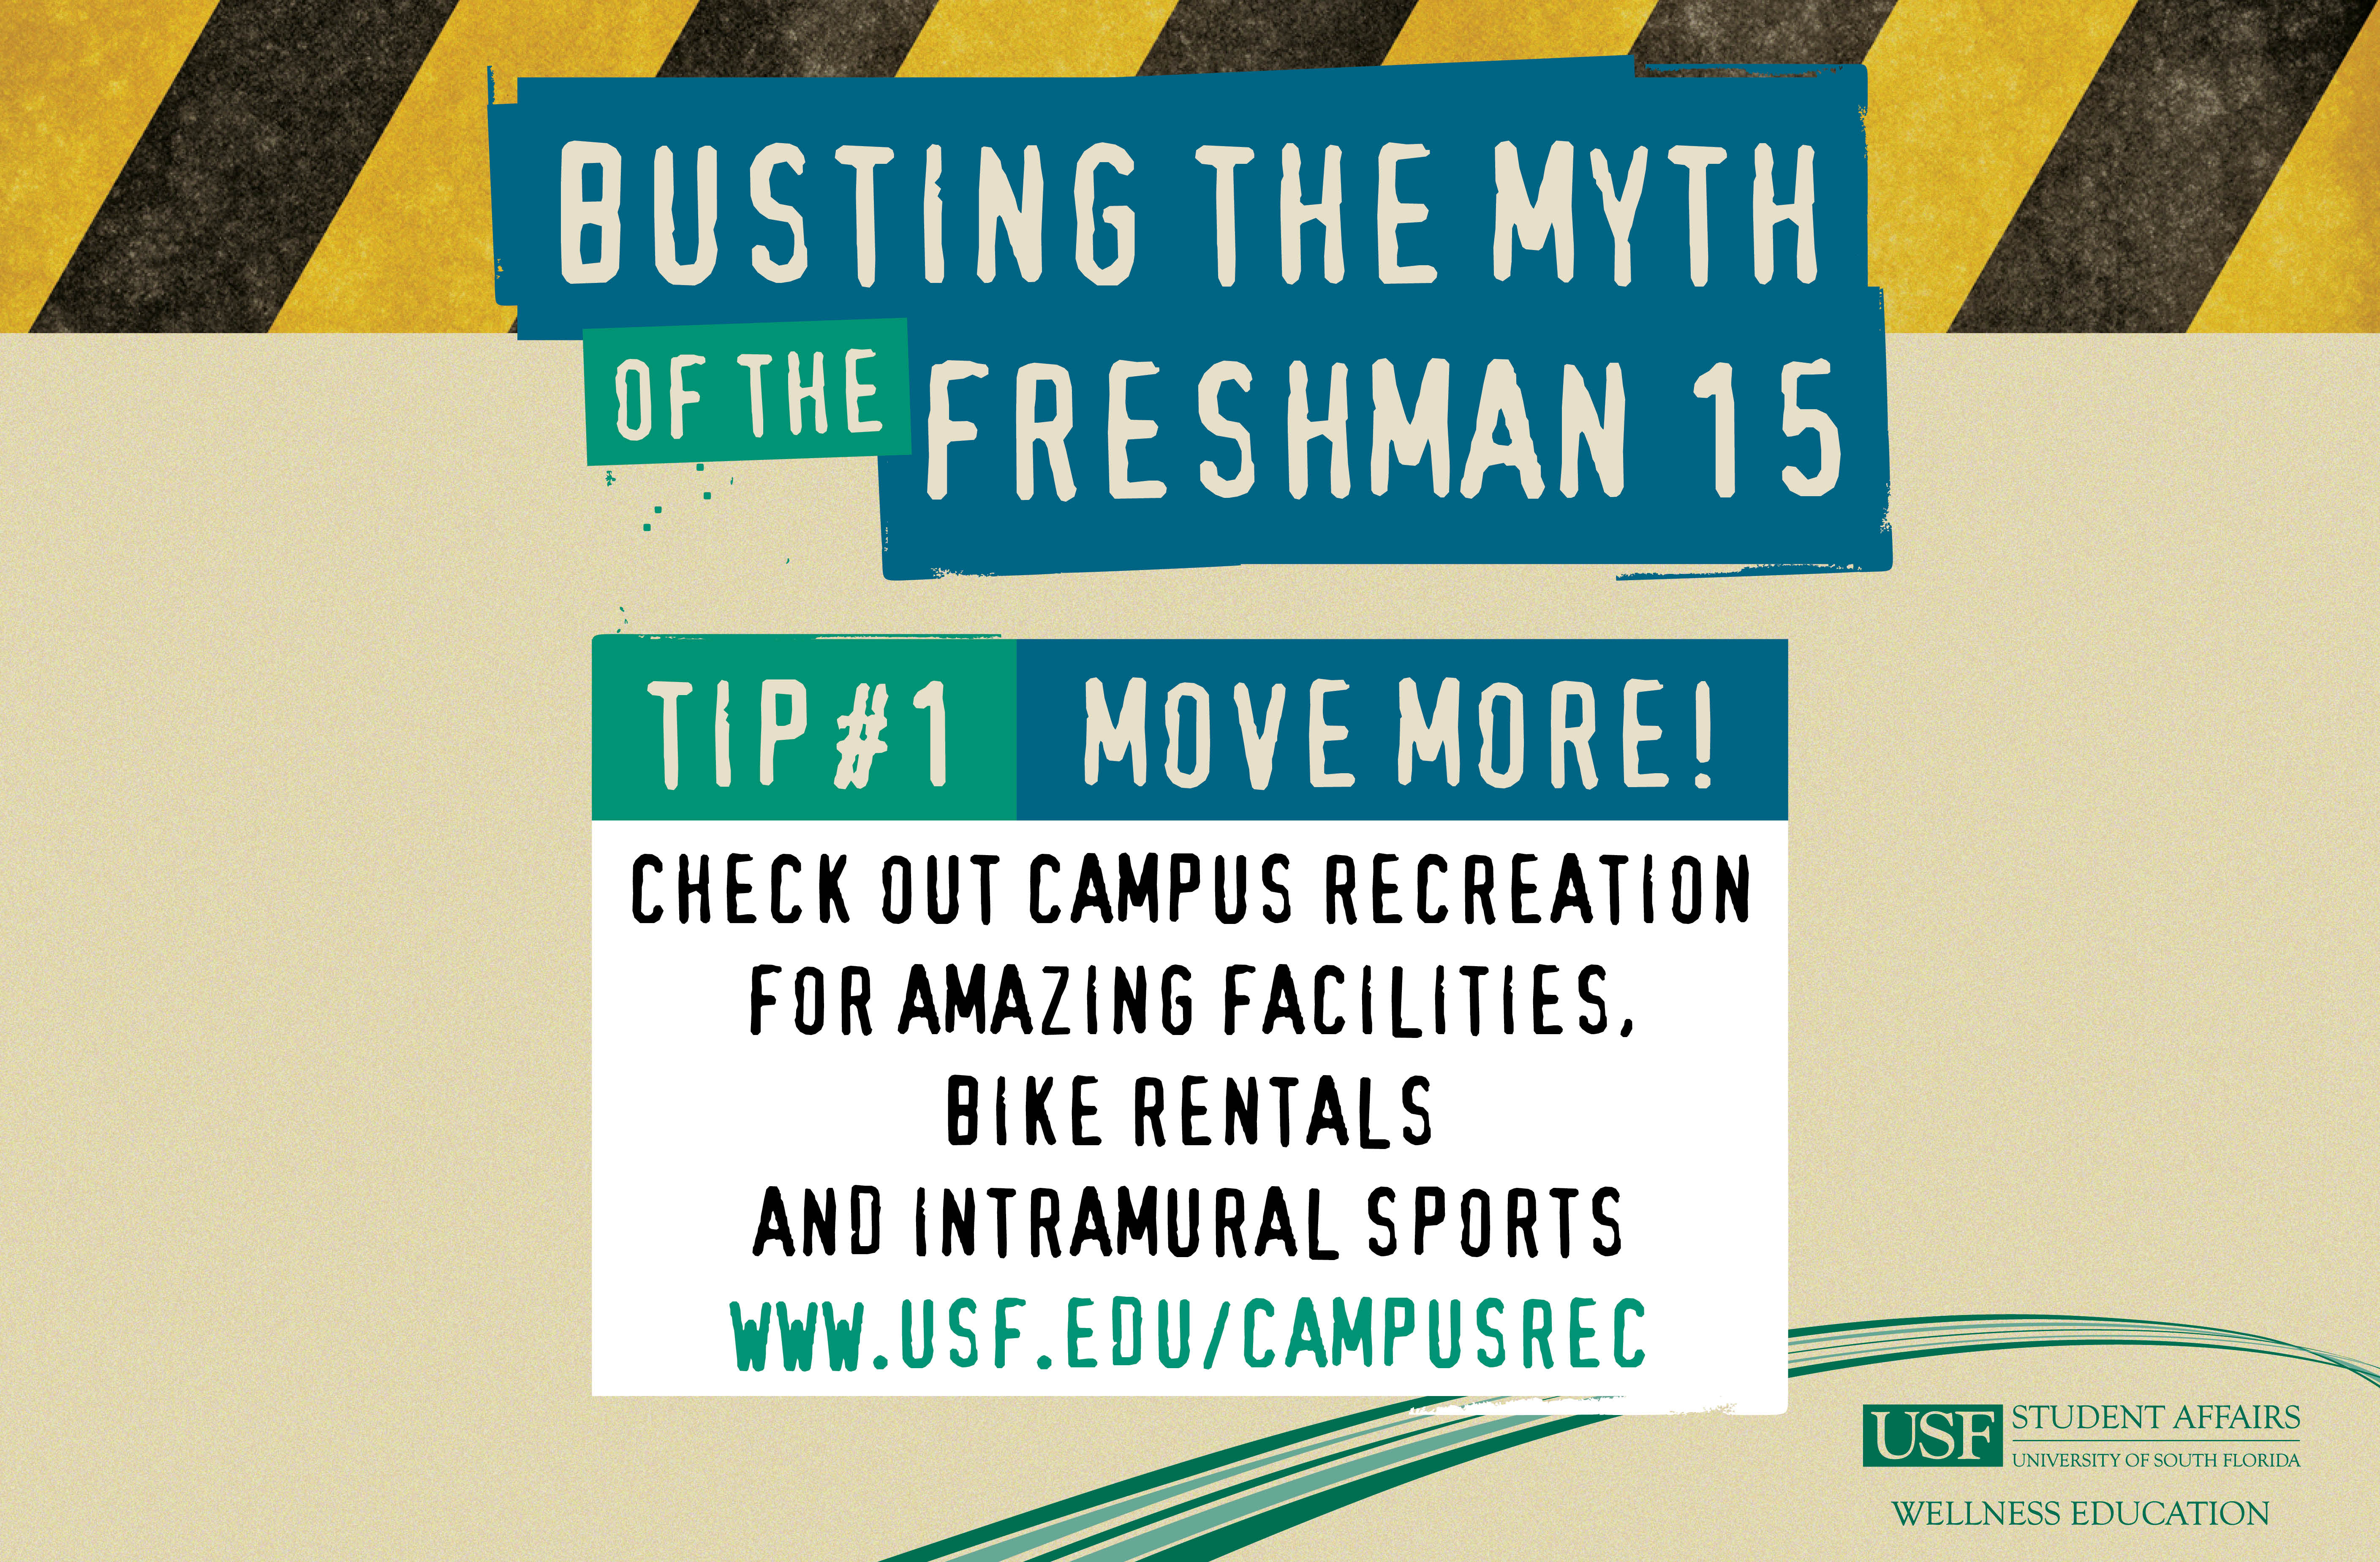 bust the freshman myth tips for healthy eating habits be well mythfreshman15 welltv 1